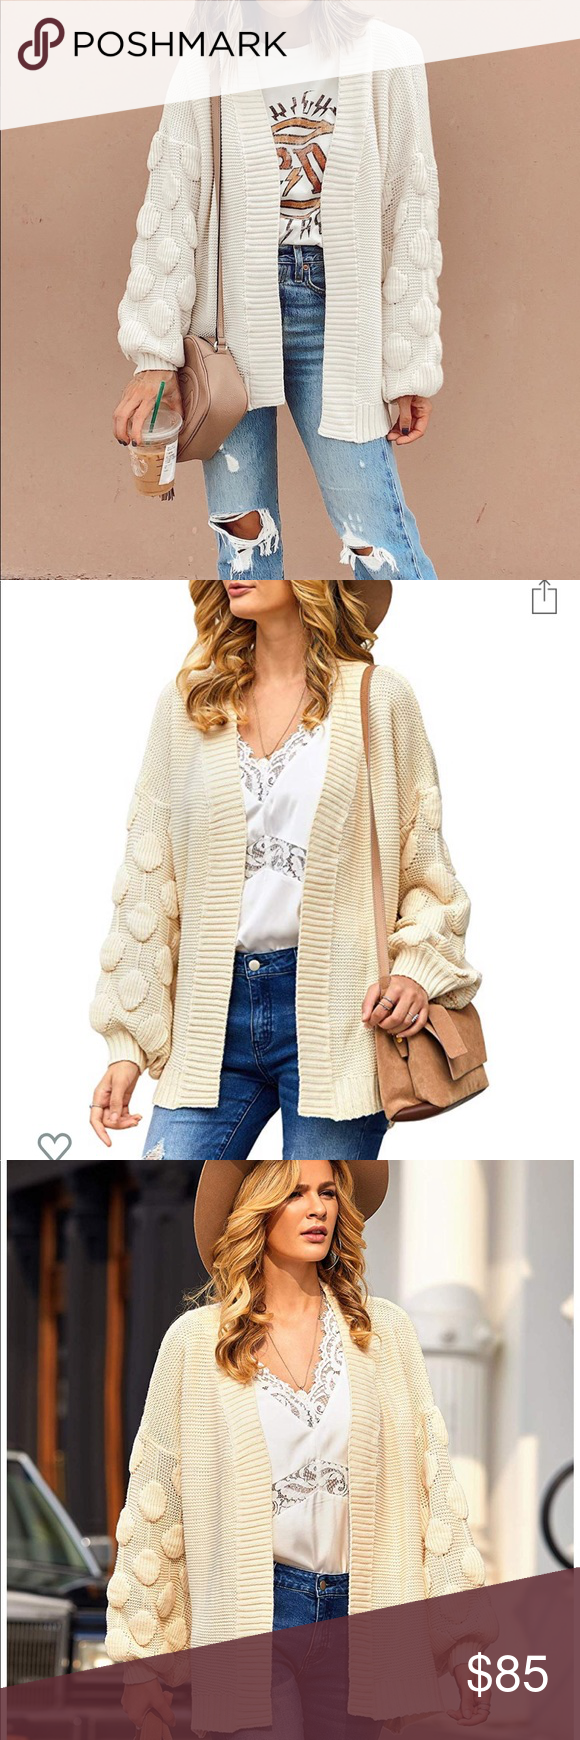 Luxe Boutique Chunky Cardigan Luxe Boutique Chunky Cardigan •brand new luxe boutique item, amazing quality •available in sizes posted •measurements in the chart •beige color Breathable and elastic chunky lightweigh knitted fabric, giving you purely comfy and airy touch. Rebellious Cactus Boutique Sweaters